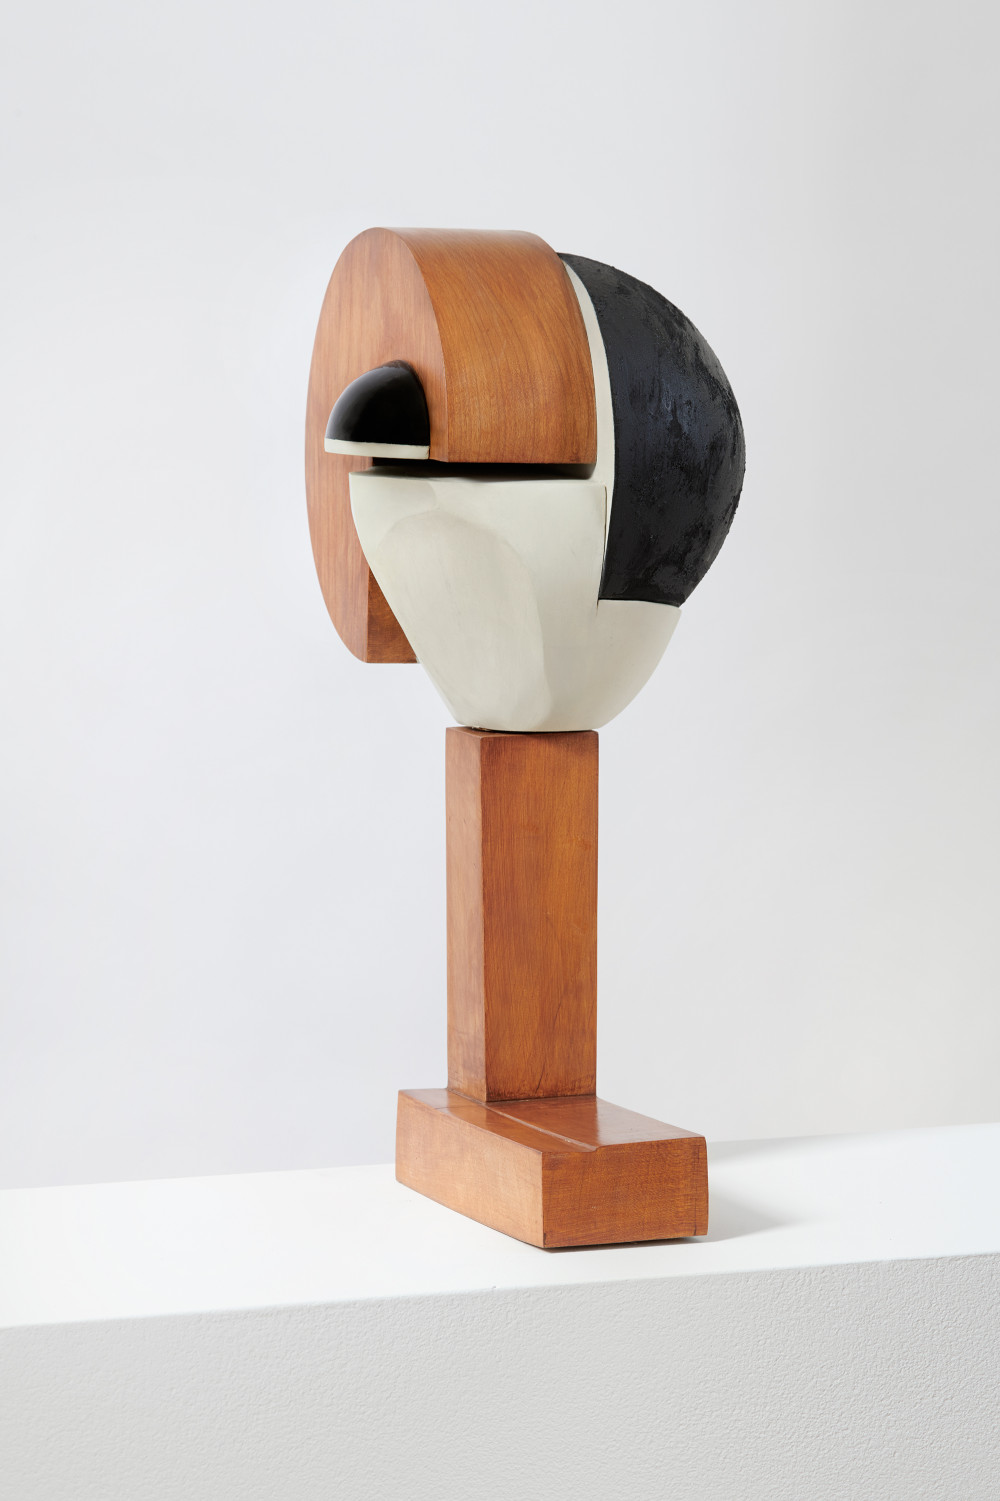 Christina Kruse, Round, 2018. Wood, acrylic paint, charcoal, lacquer, and wax 18 x 12 x 8 inches